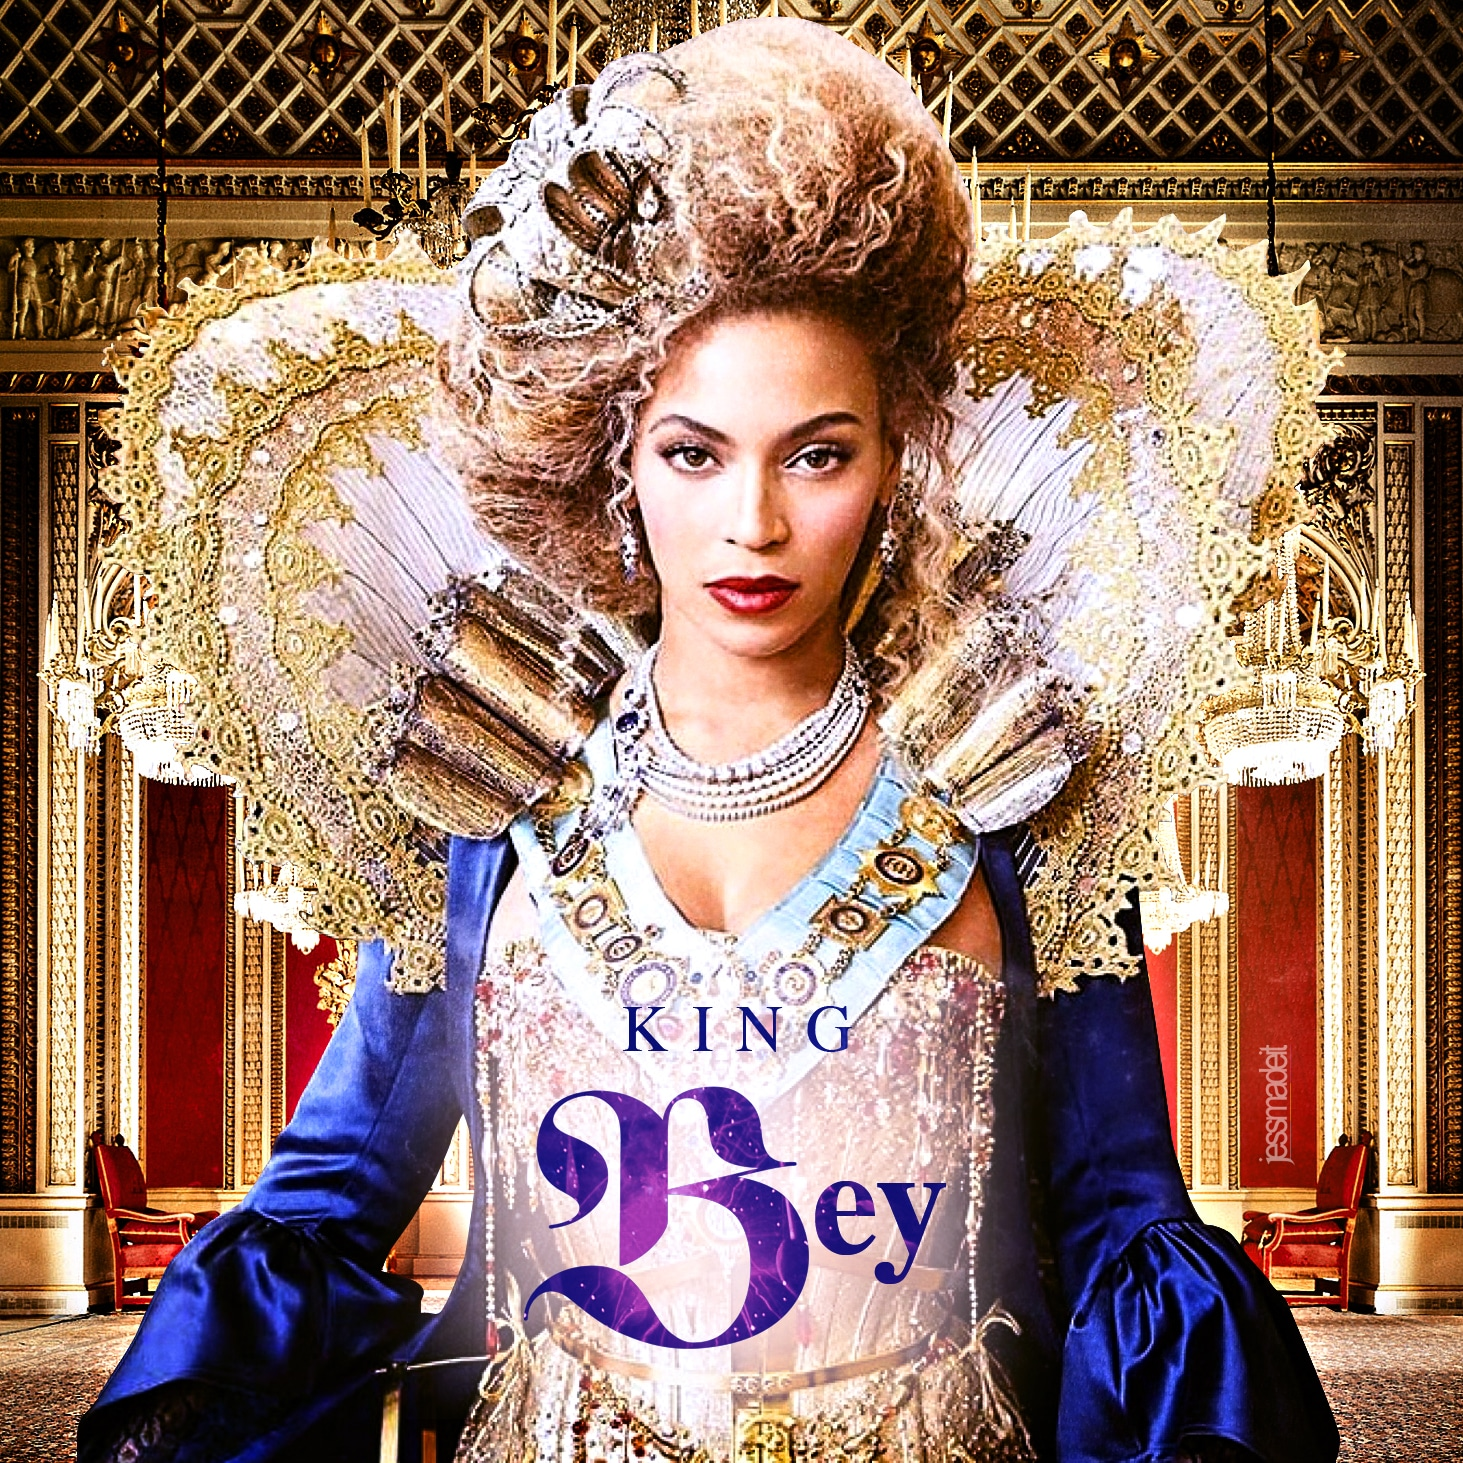 King Bey